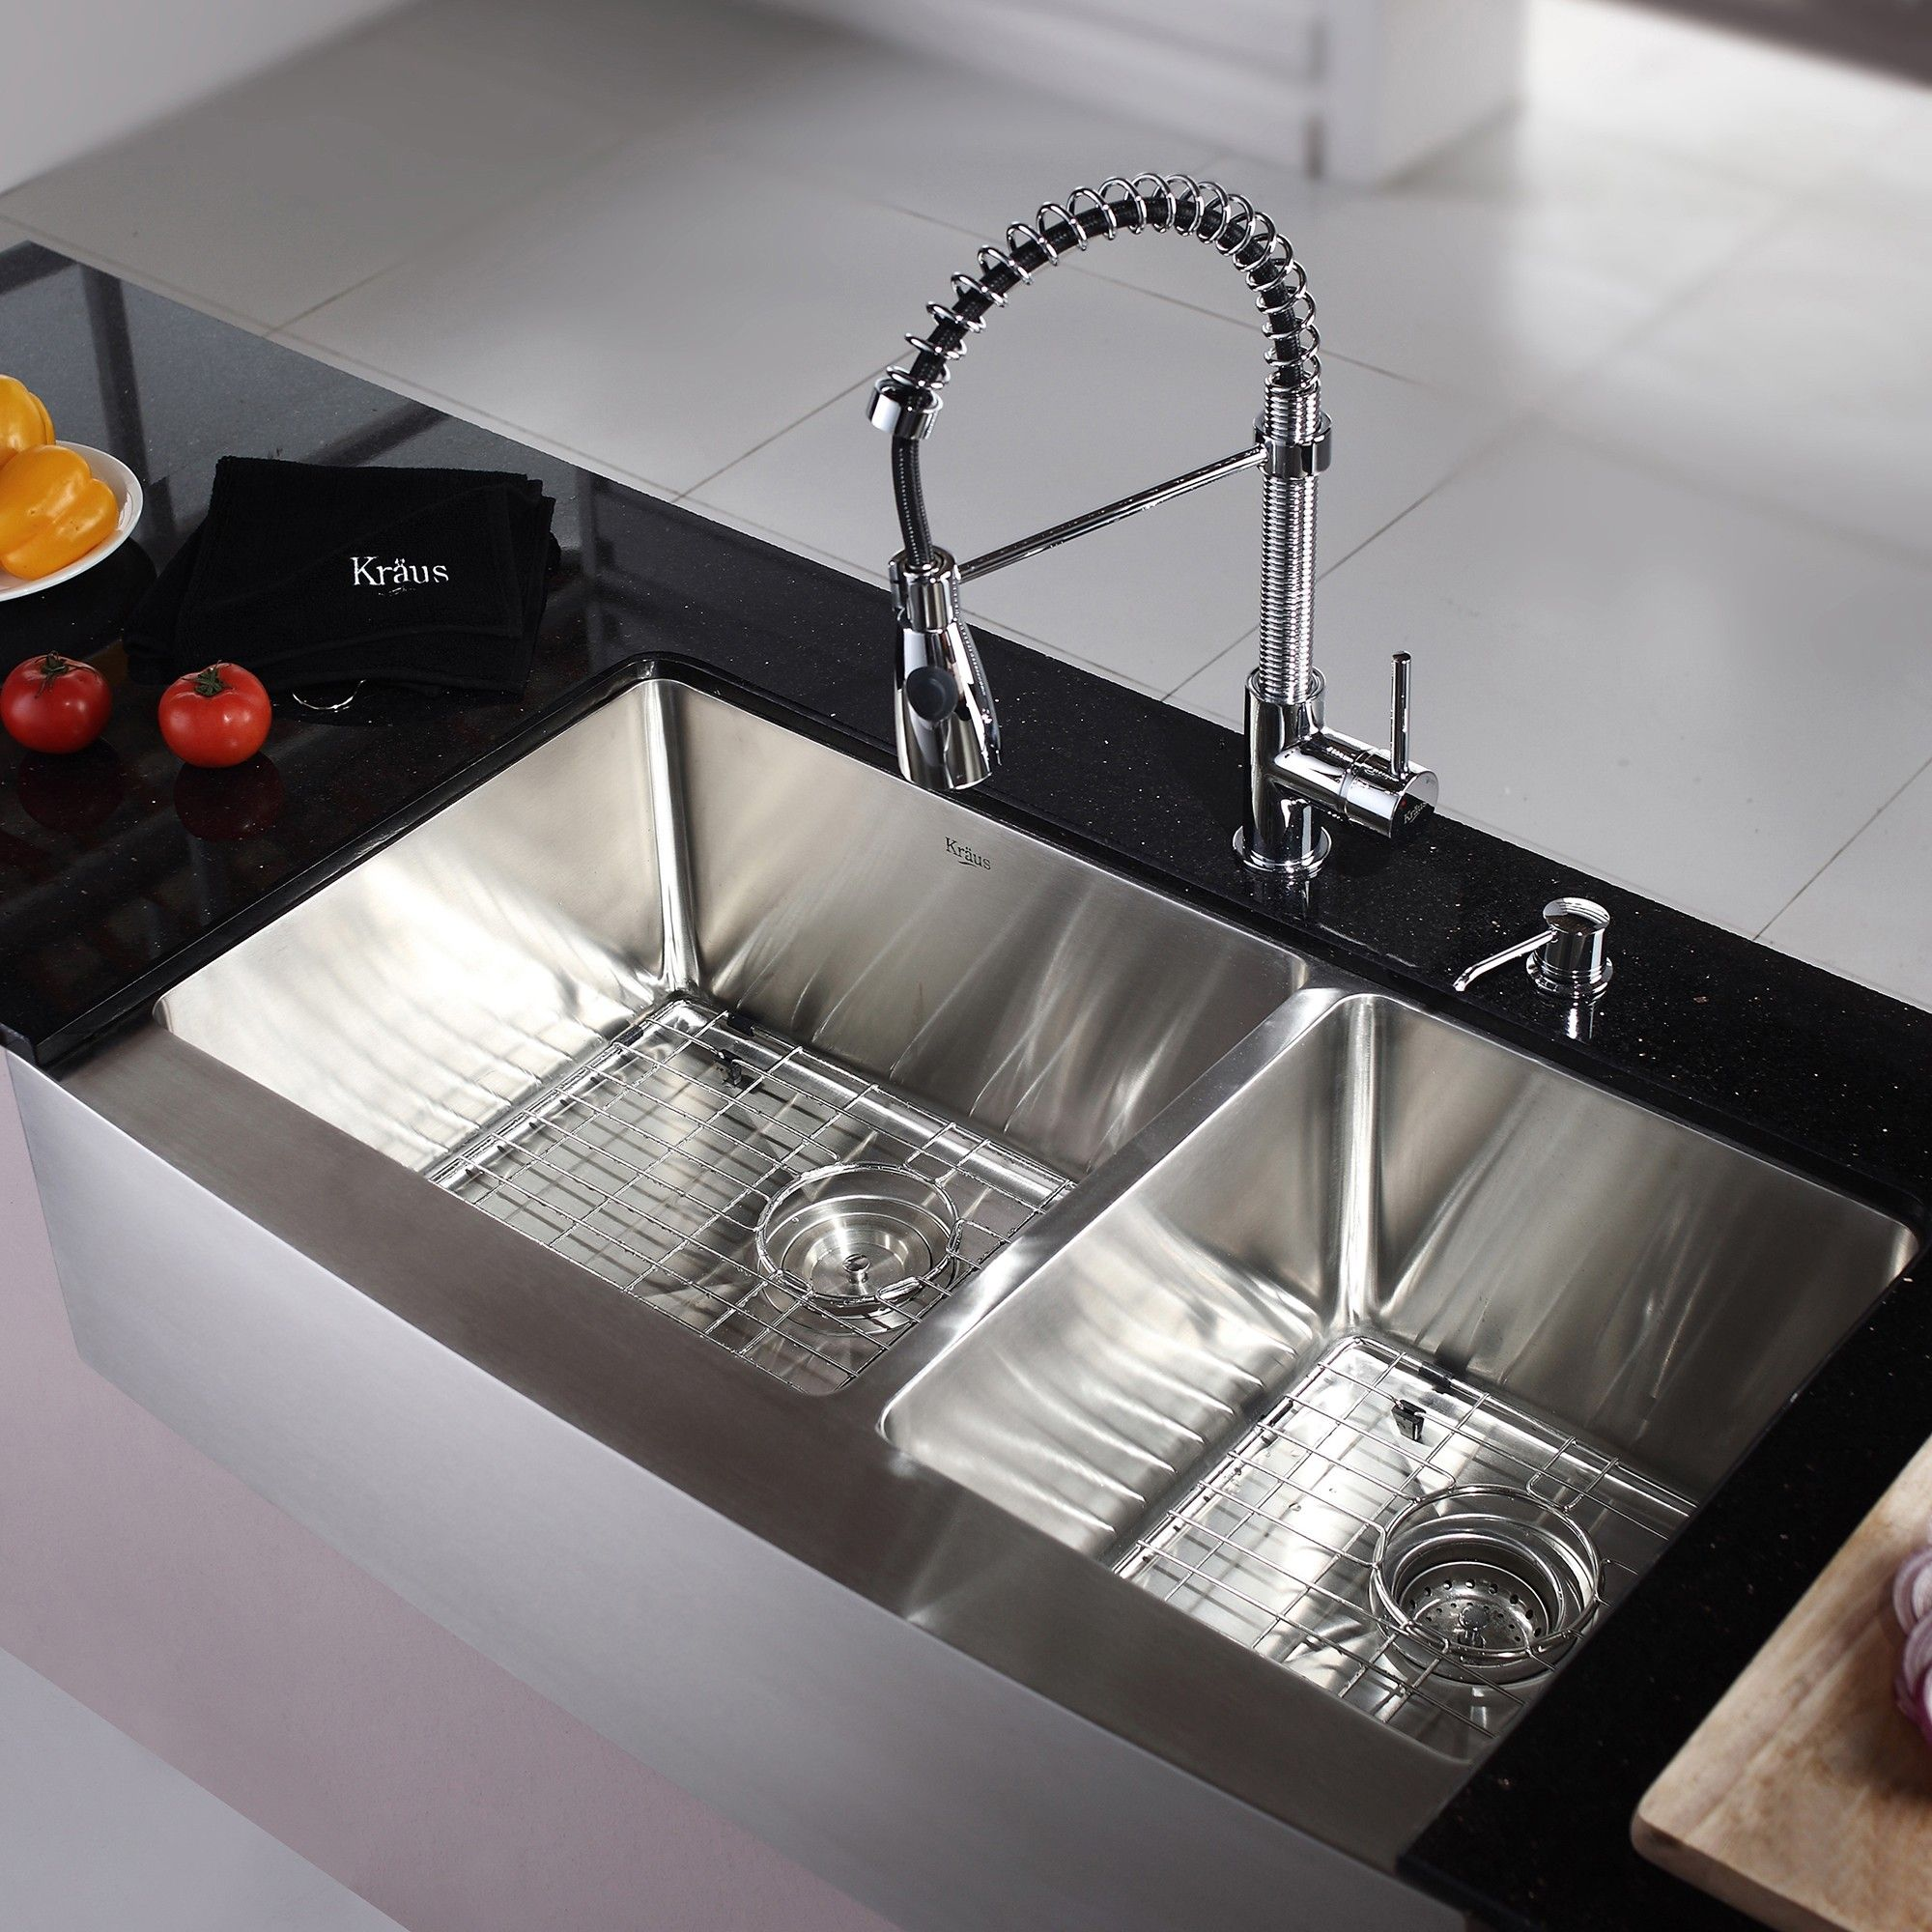 Kraus 36 inch Farmhouse Double Bowl Stainless Steel Kitchen Sink ...